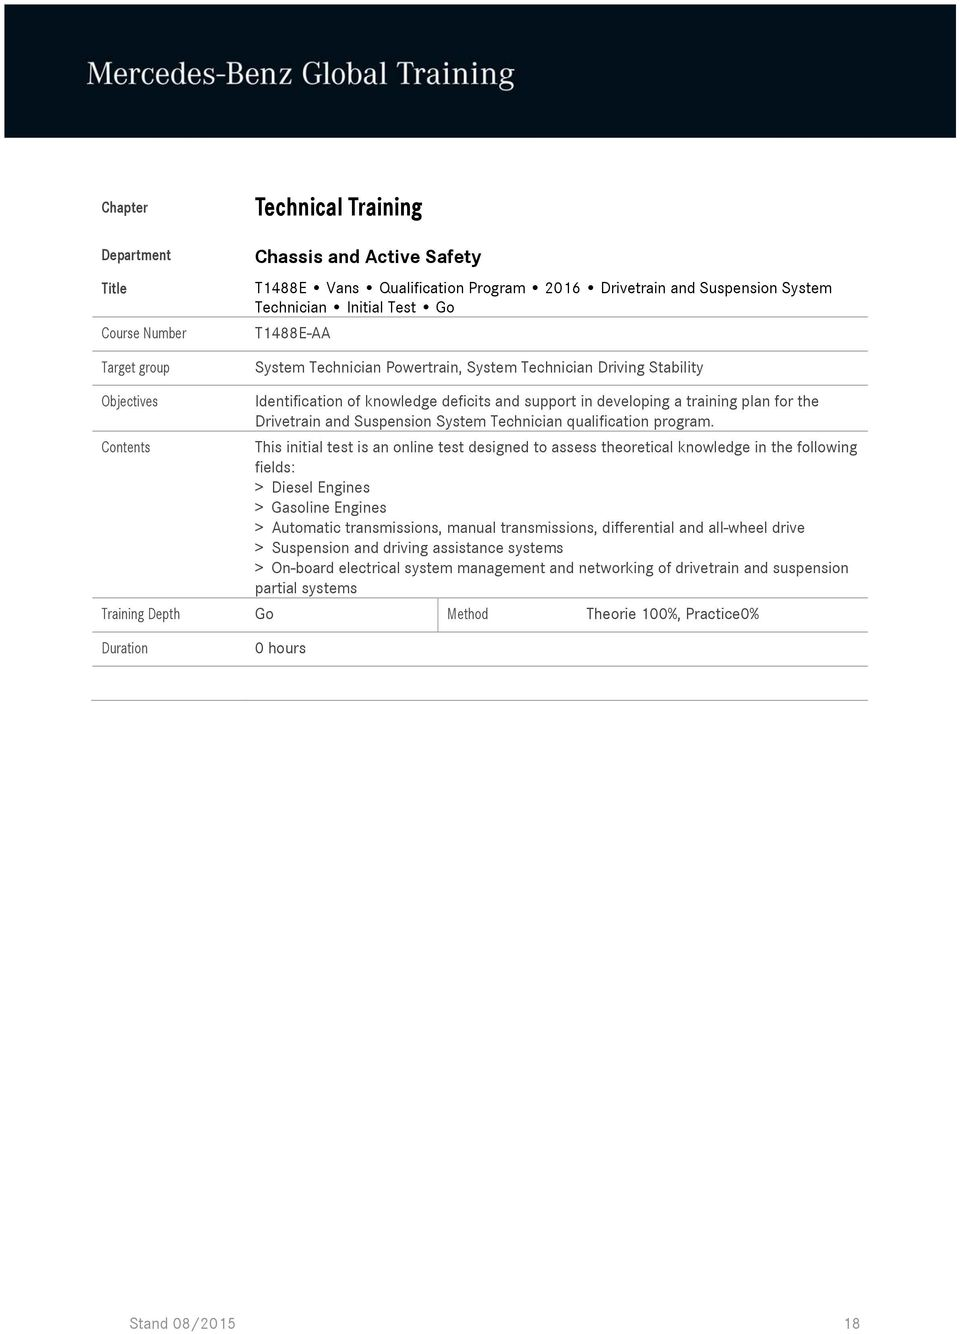 hight resolution of this initial test is an online test designed to assess theoretical knowledge in the following fields